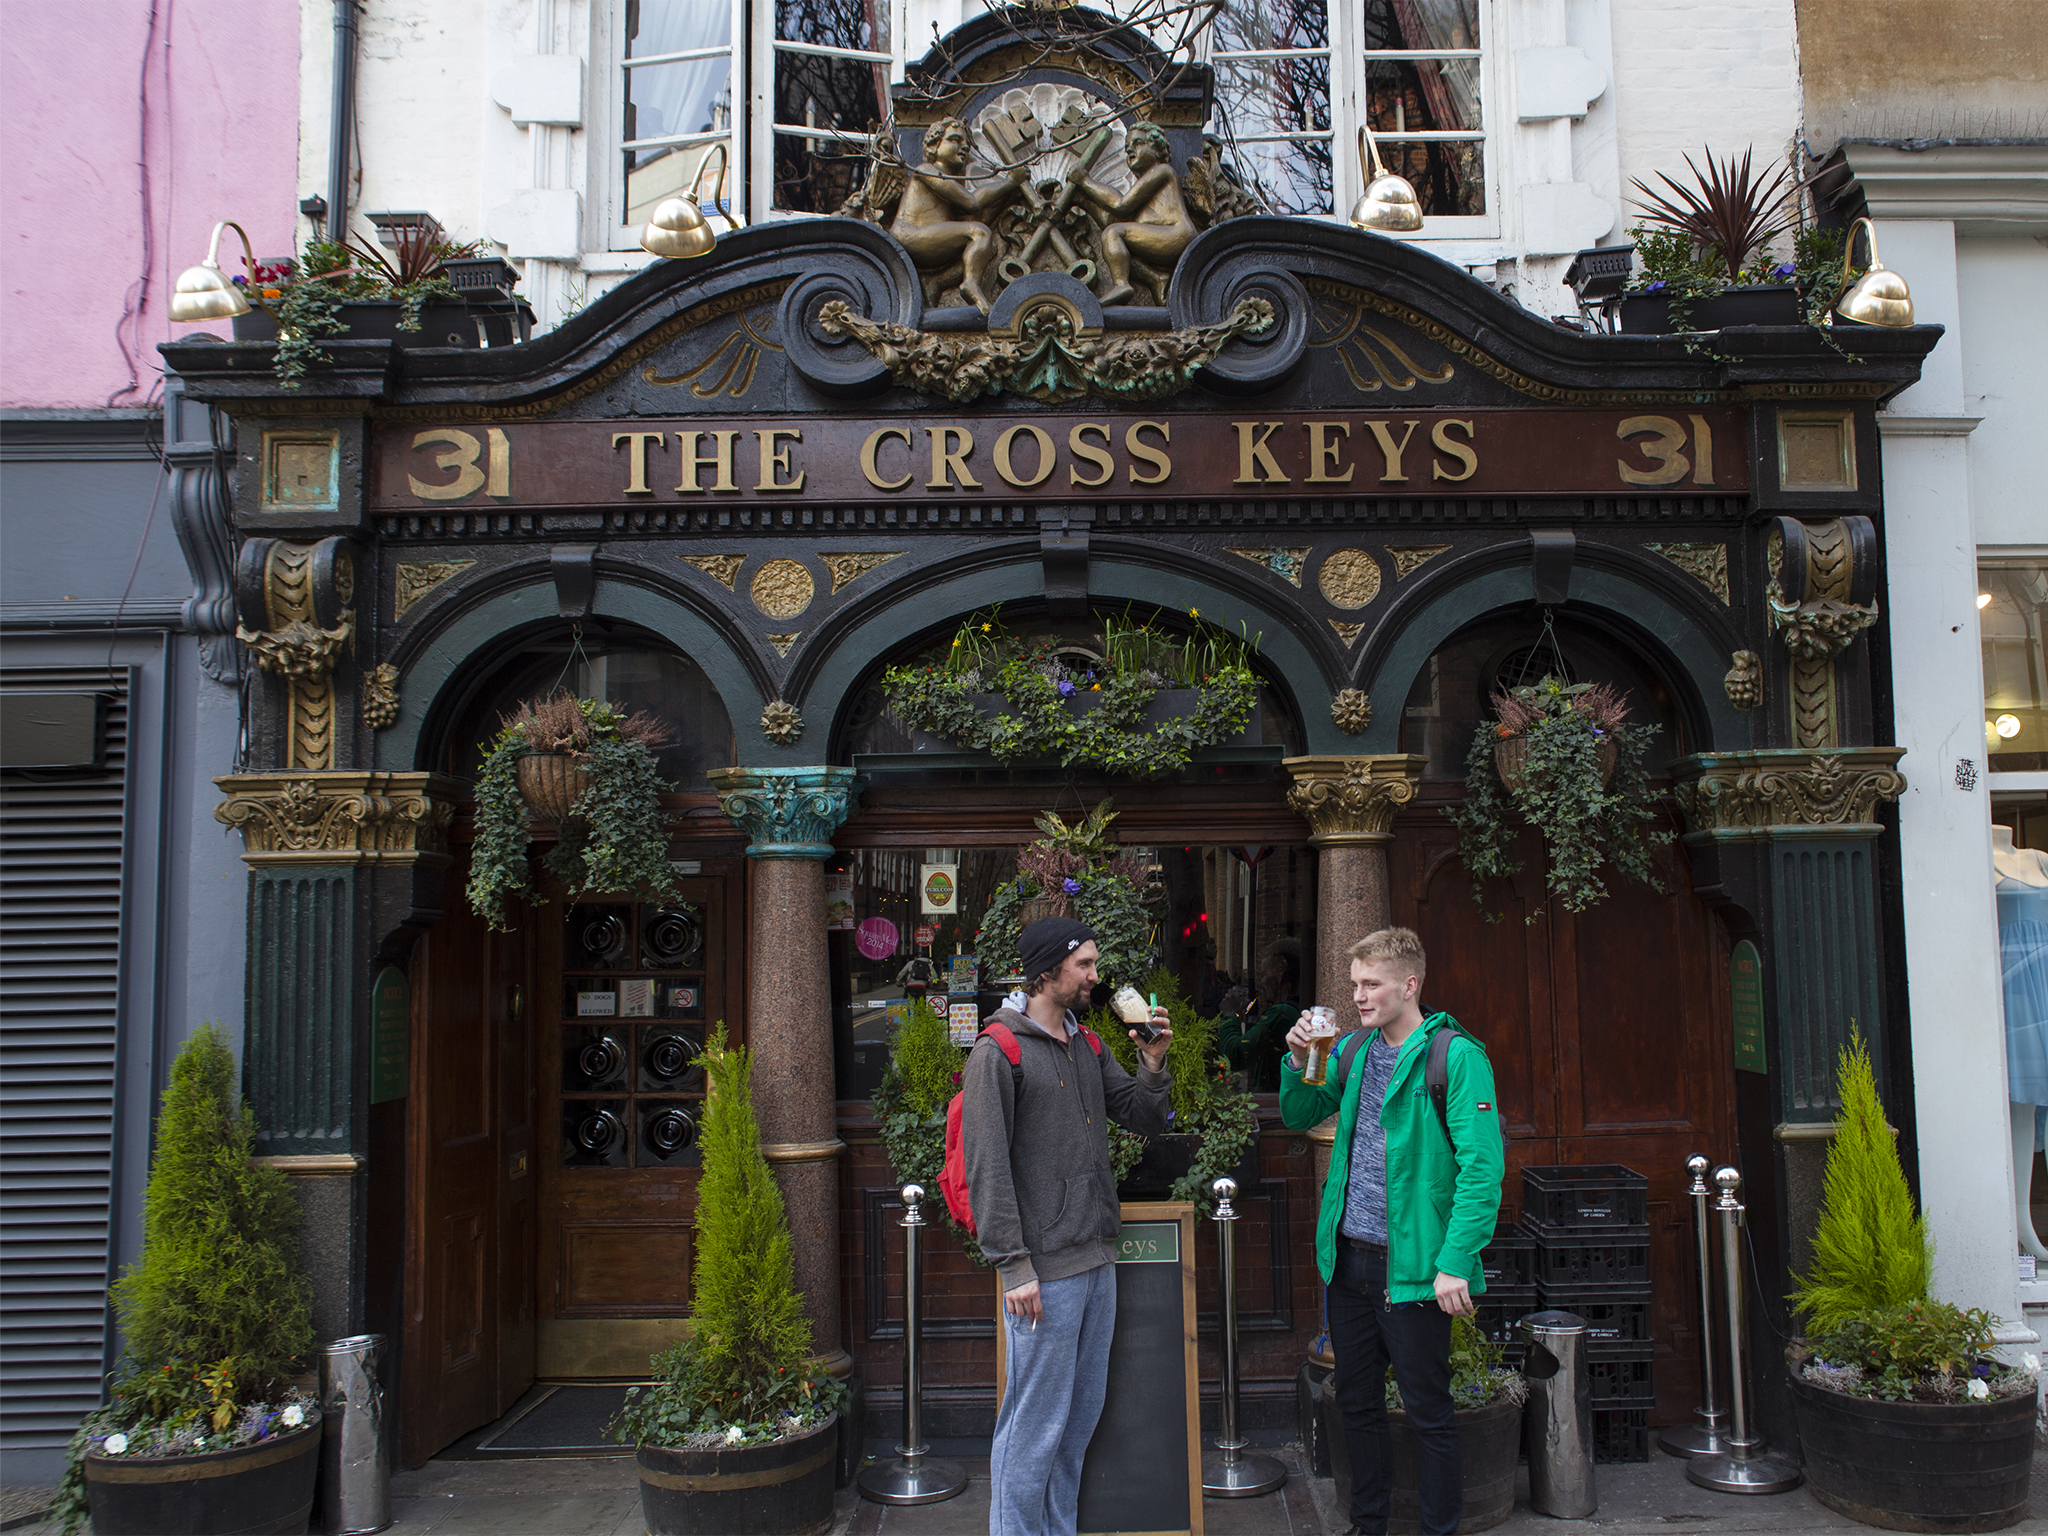 The 100 best bars and pubs in London - The Cross Keys, Soho